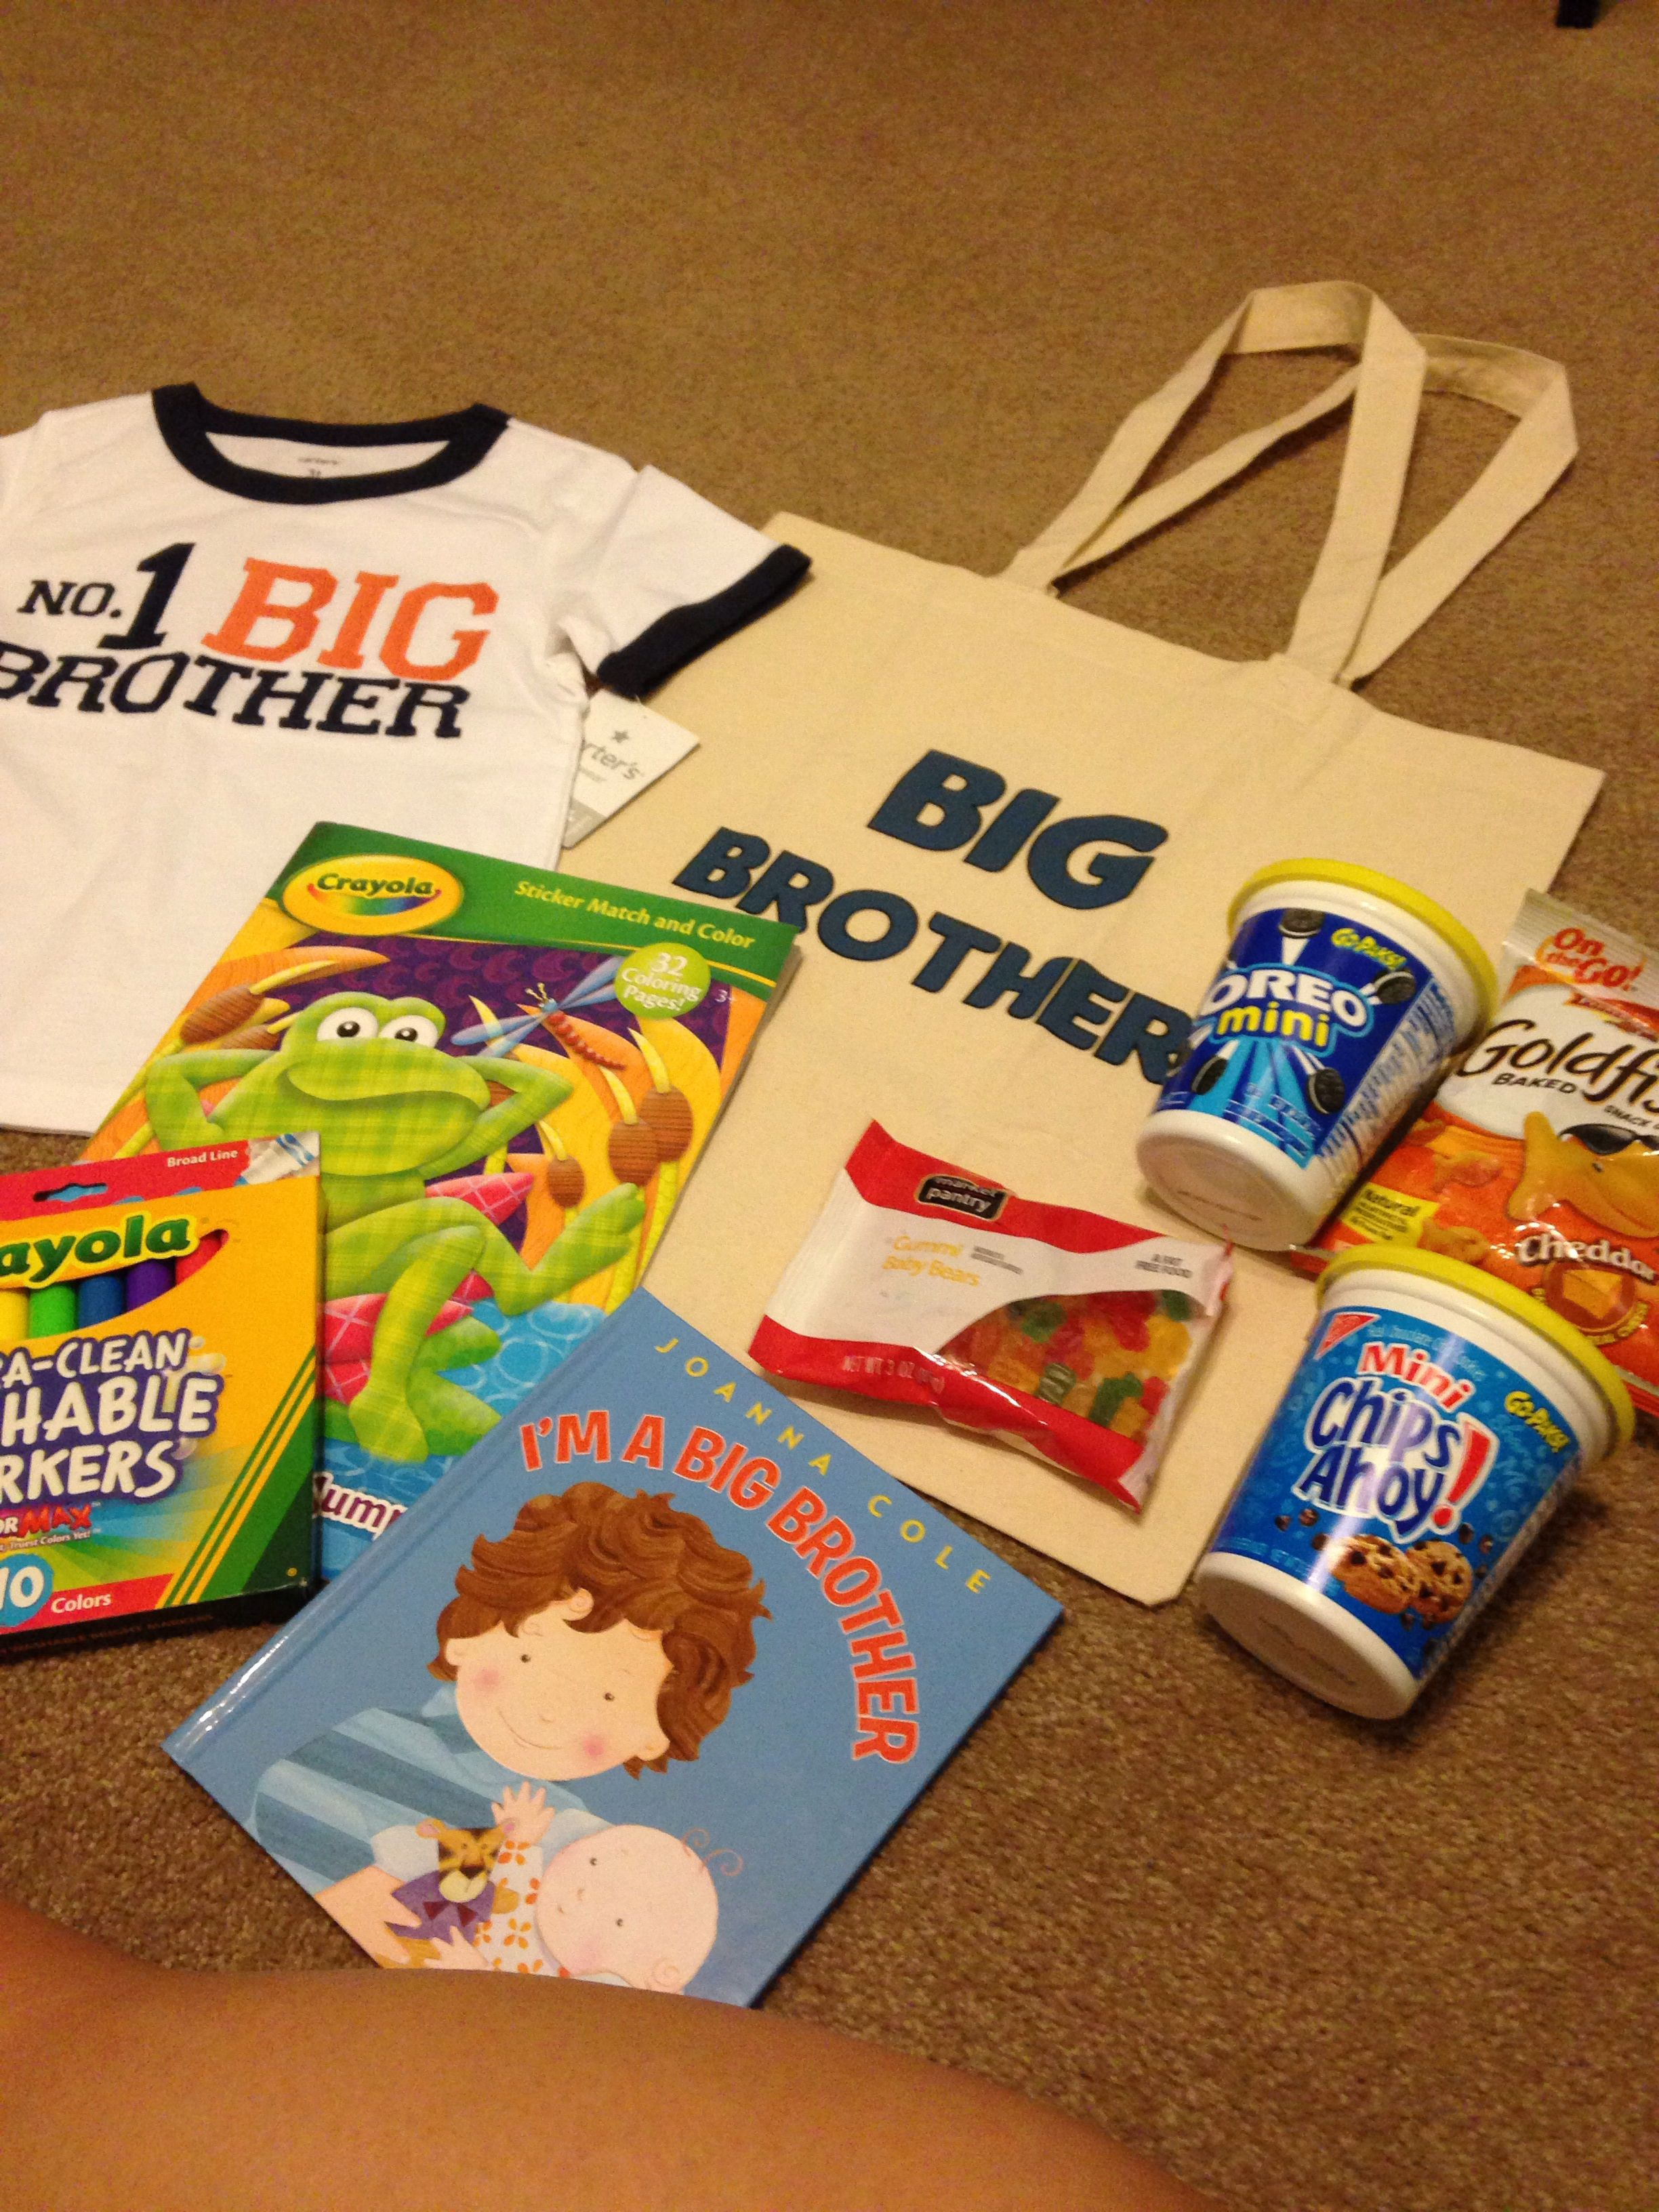 Finest Big Brother Kit! Jacob will have snacks and stuff to keep him  NV55